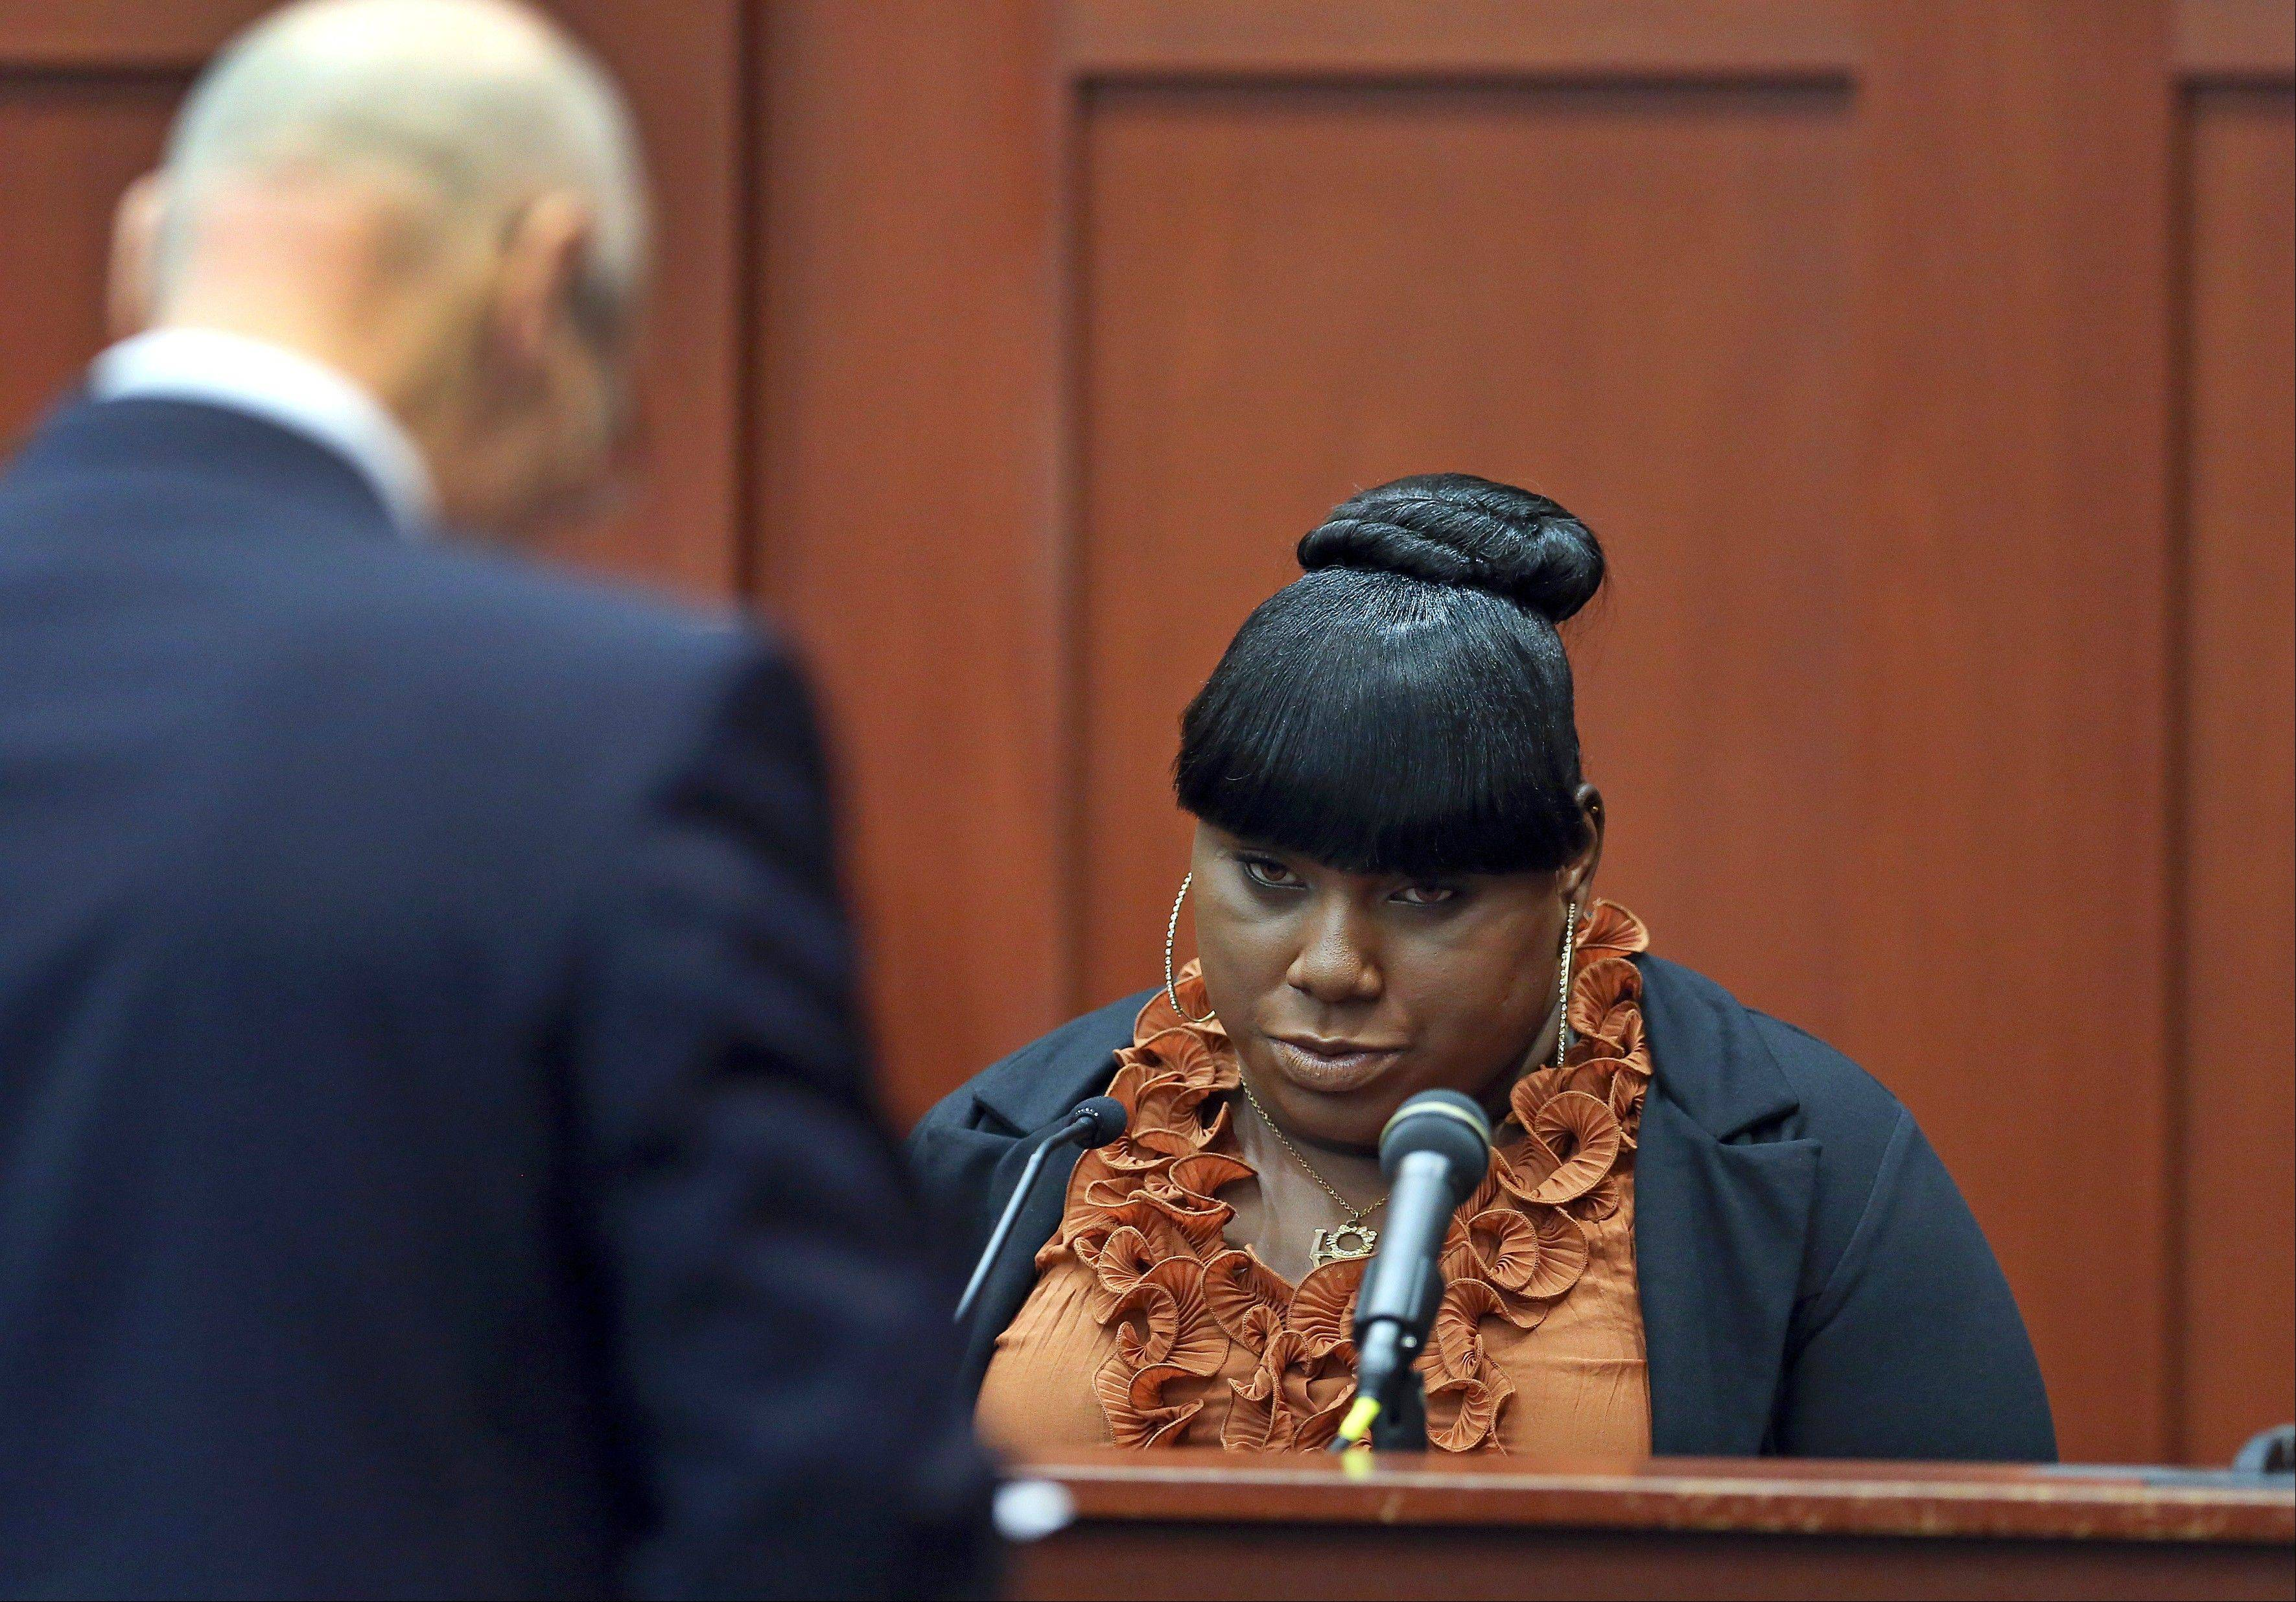 Witness Rachel Jeantel, right, continues her testimony to defense attorney Don West in George Zimmerman�s trial in Seminole circuit court in Sanford, Fla. Thursday, June 27, 2013. Zimmerman has been charged with second-degree murder for the 2012 shooting death of Trayvon Martin.